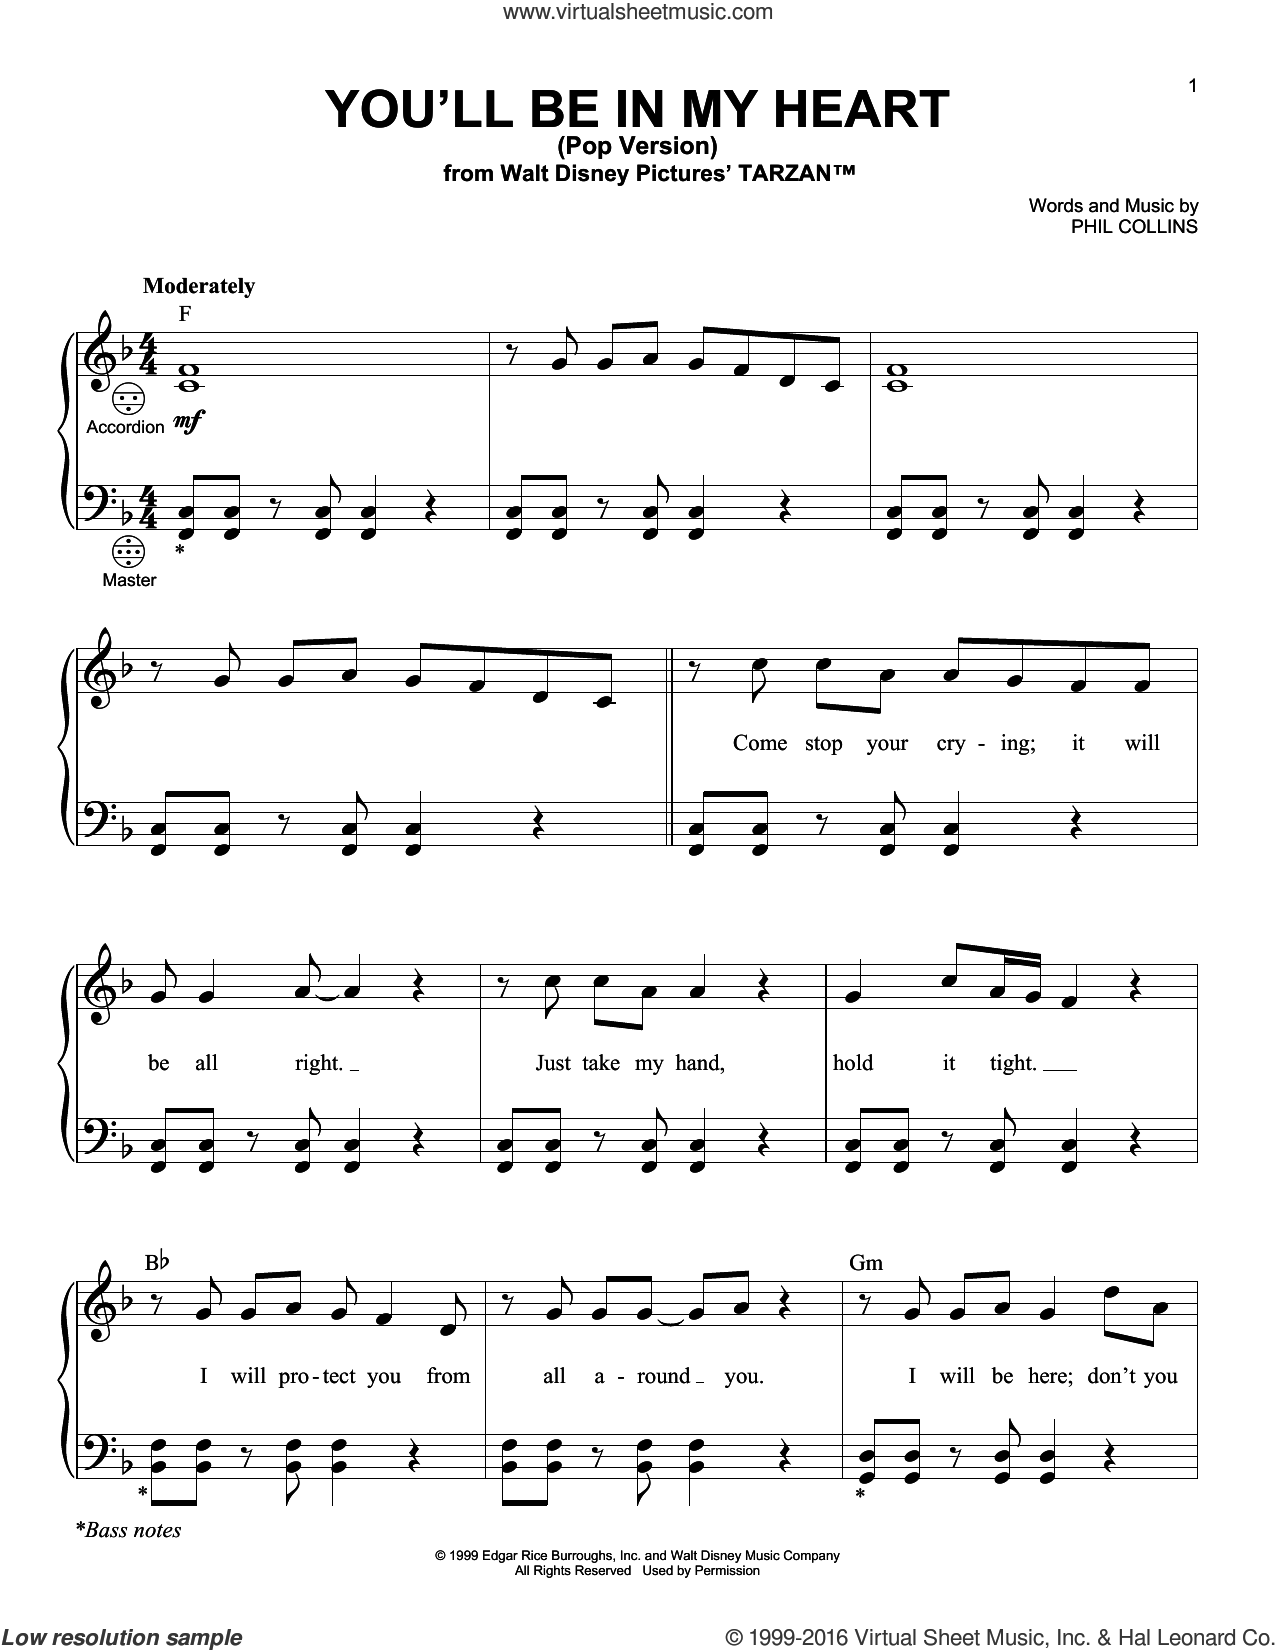 You'll Be In My Heart (Pop Version) sheet music for accordion by Phil Collins, intermediate skill level